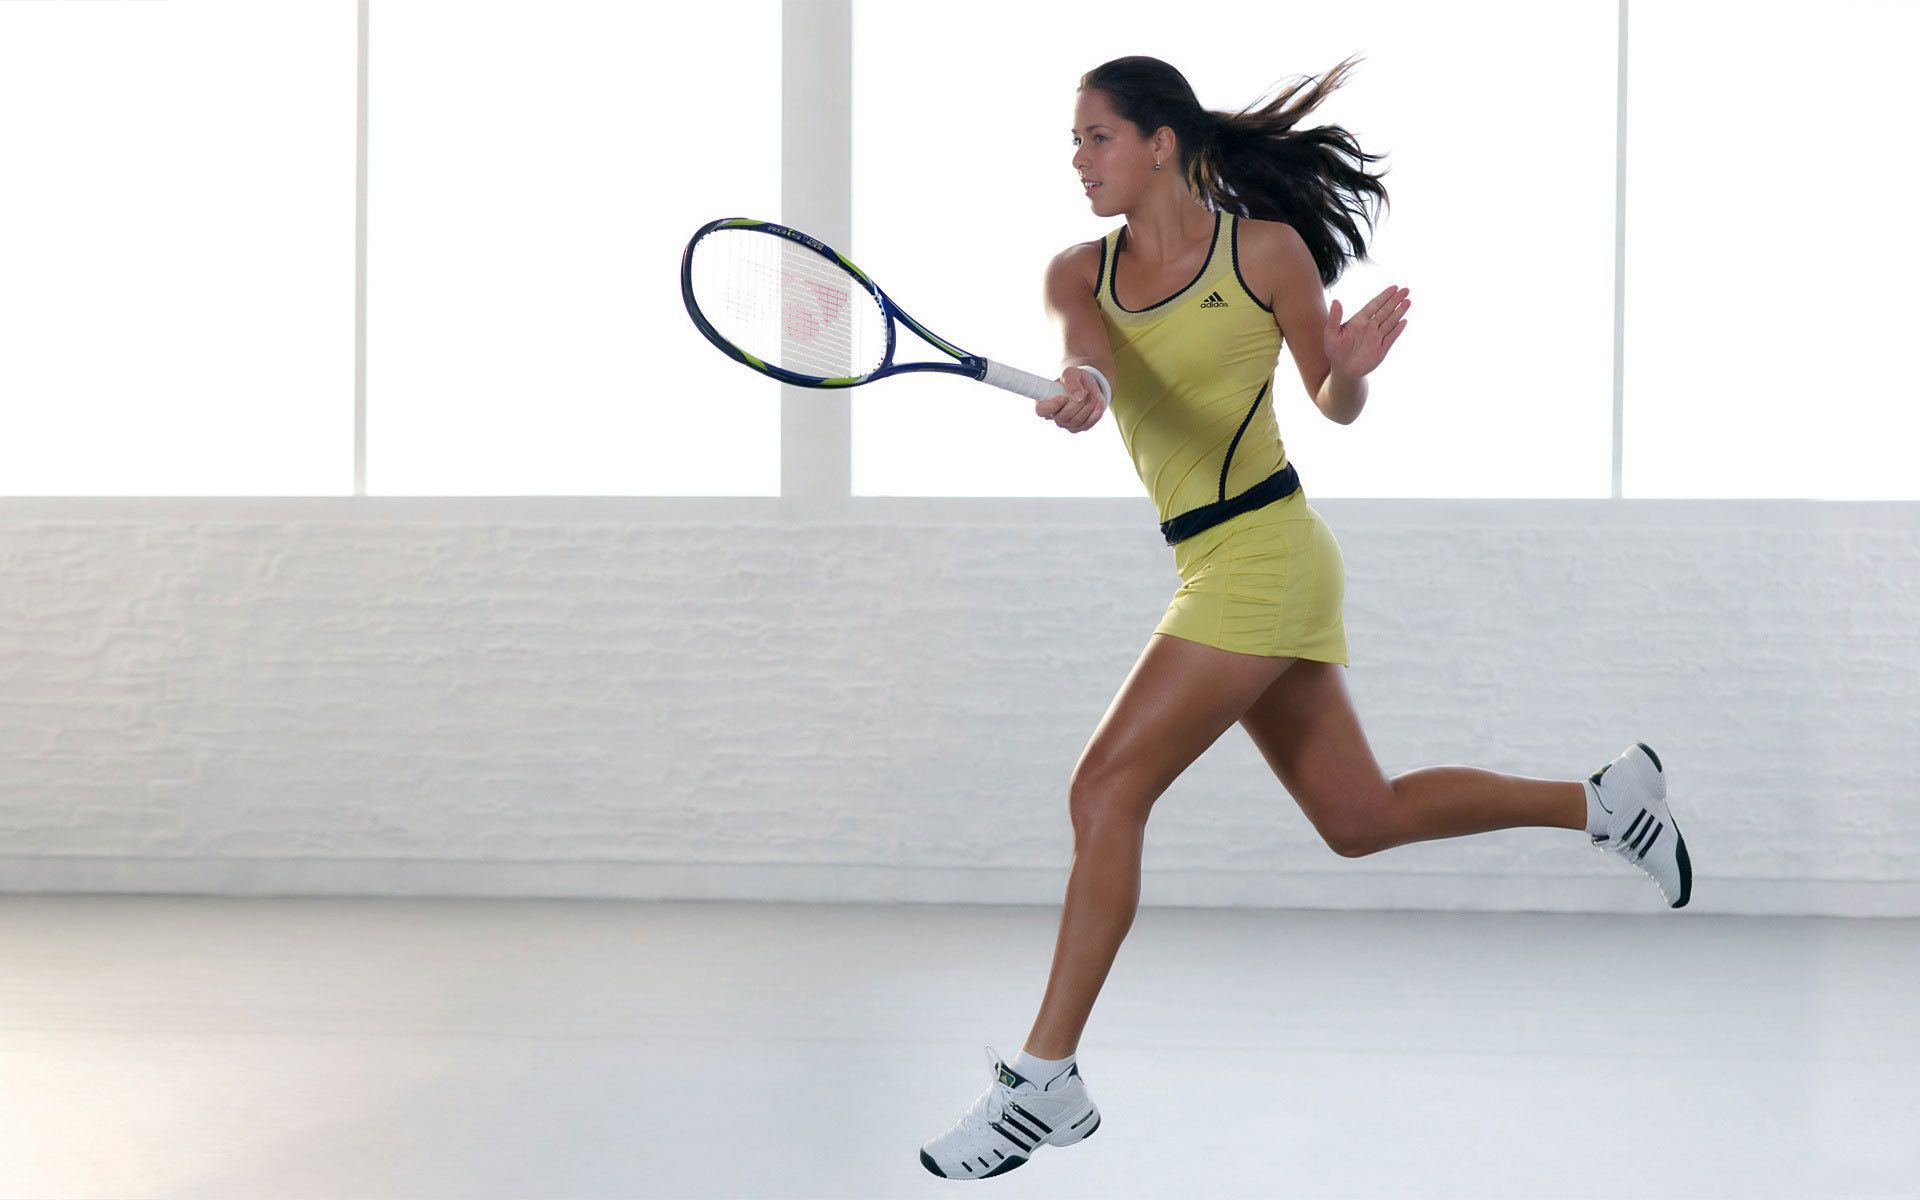 Picture Ana Ivanovic